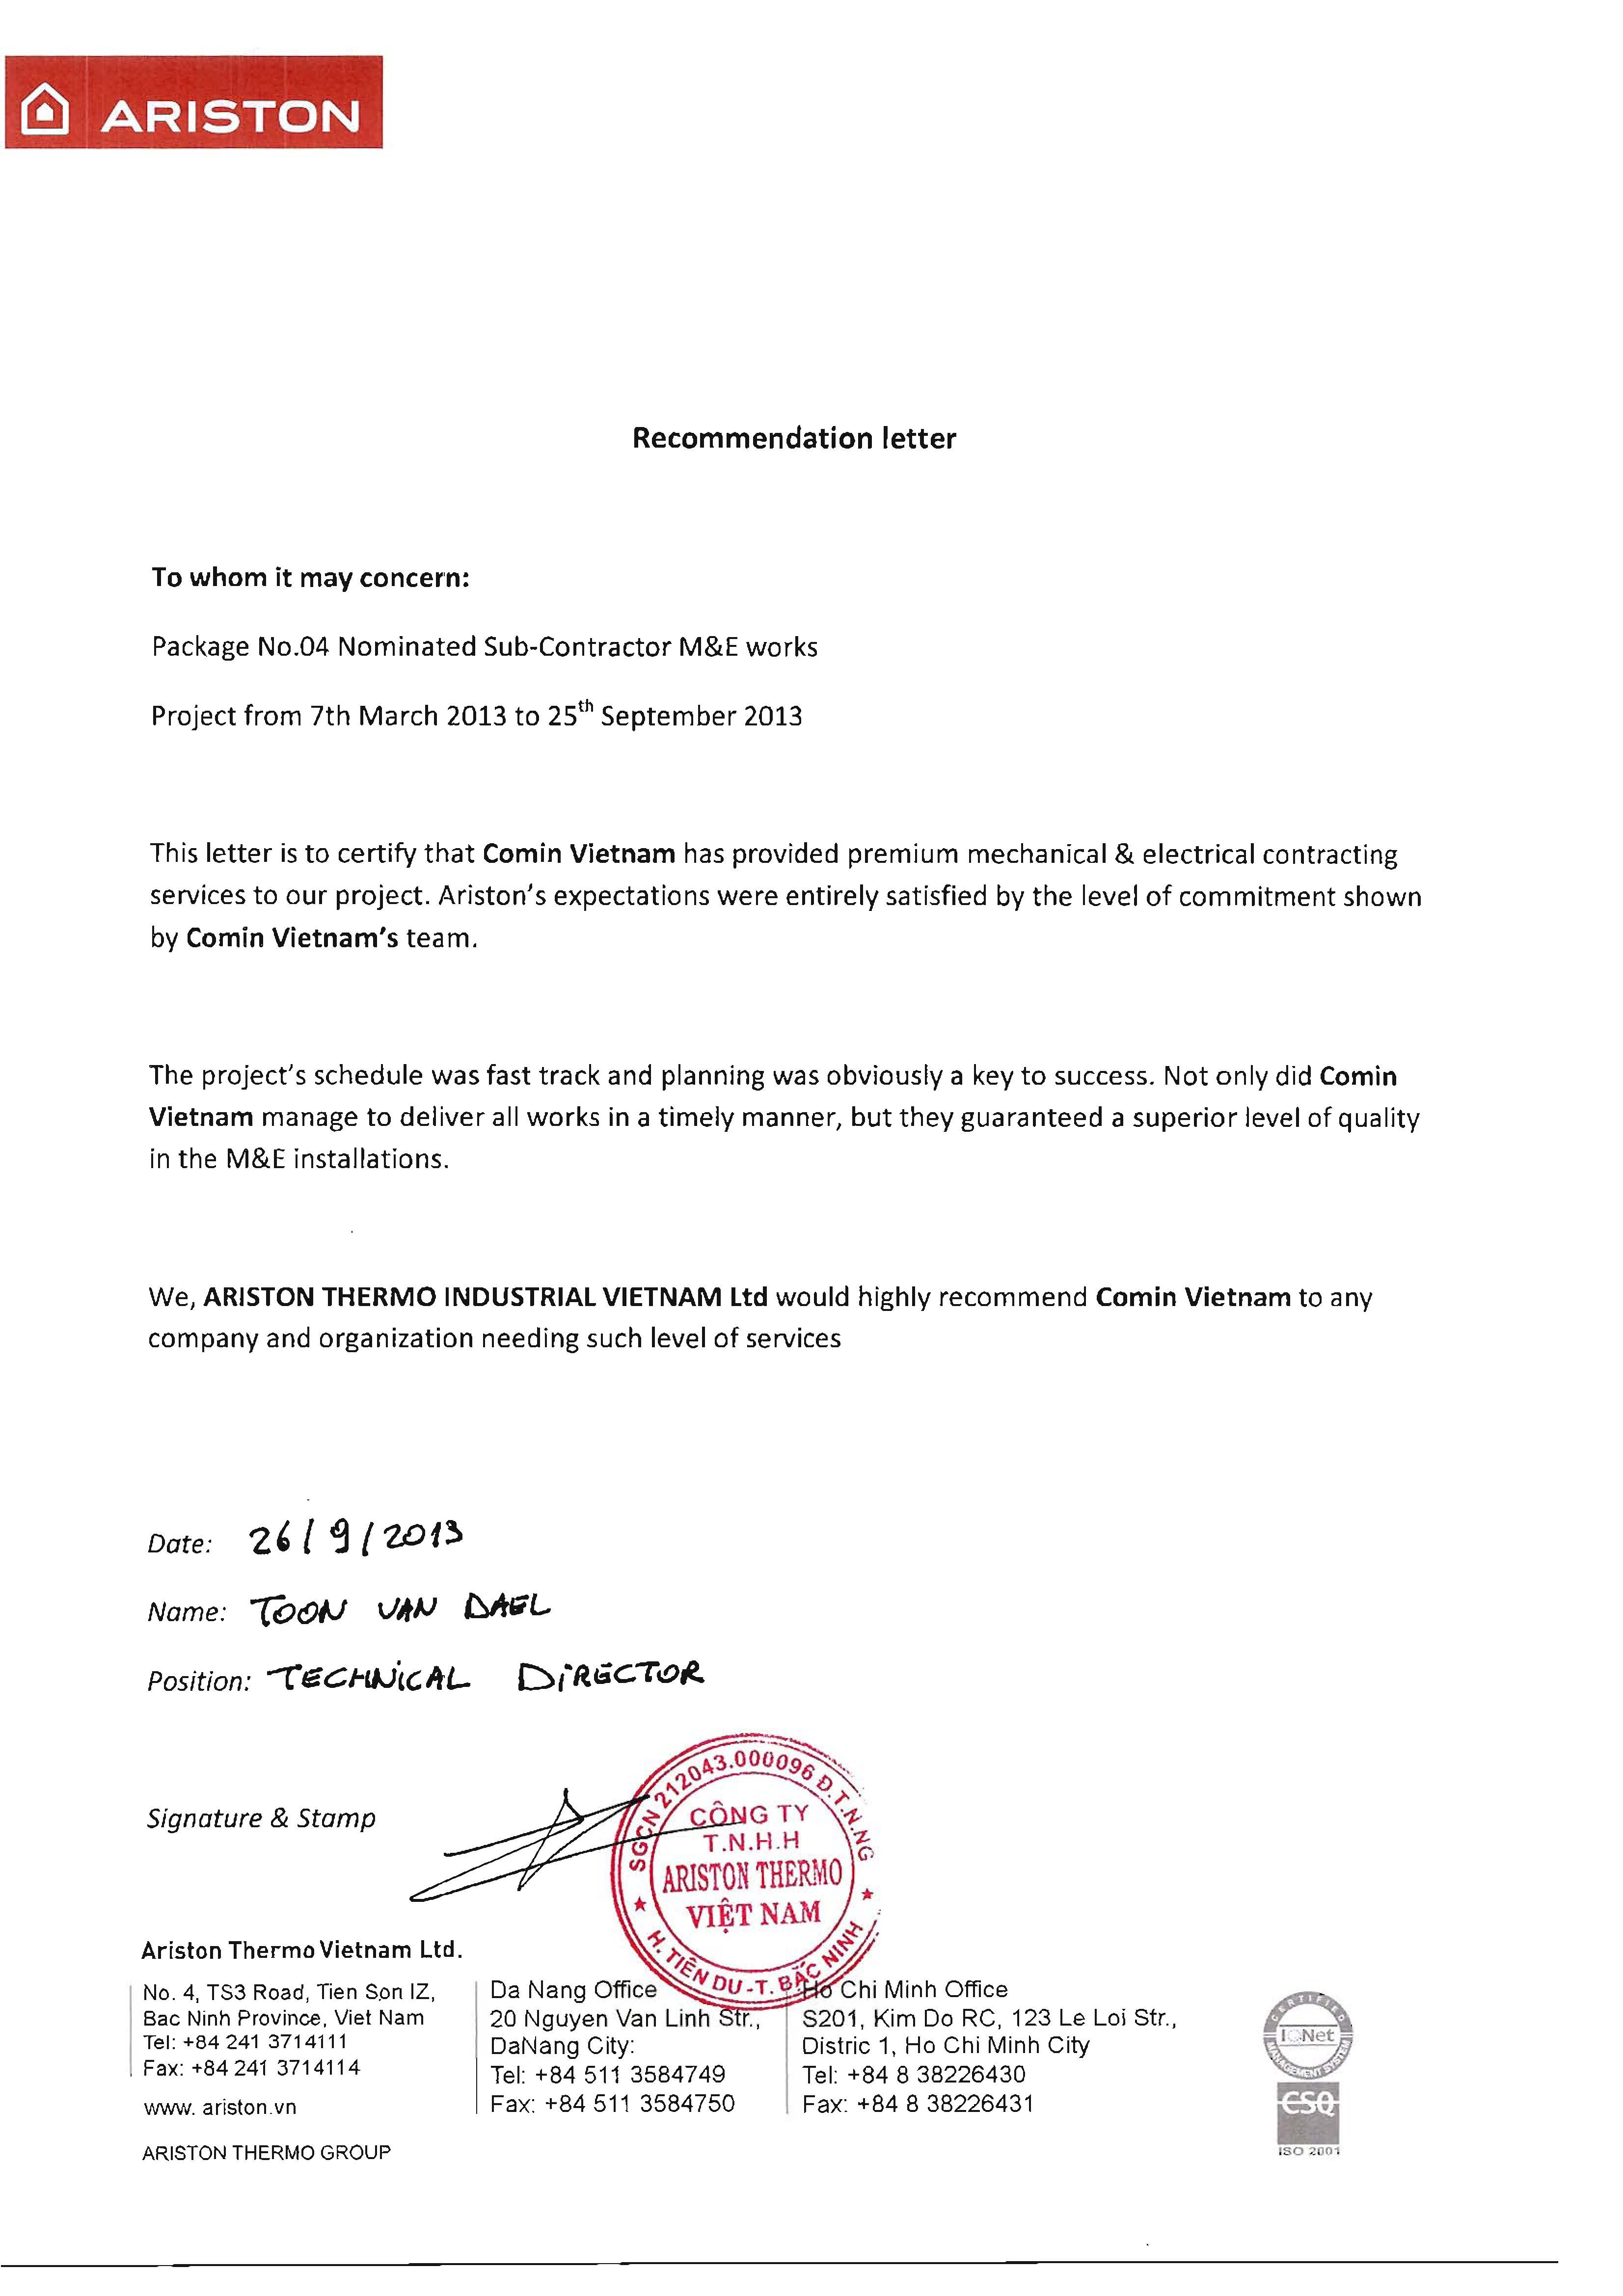 custom essay writing service   16 49  page  free plagiarism report   application letter for hse